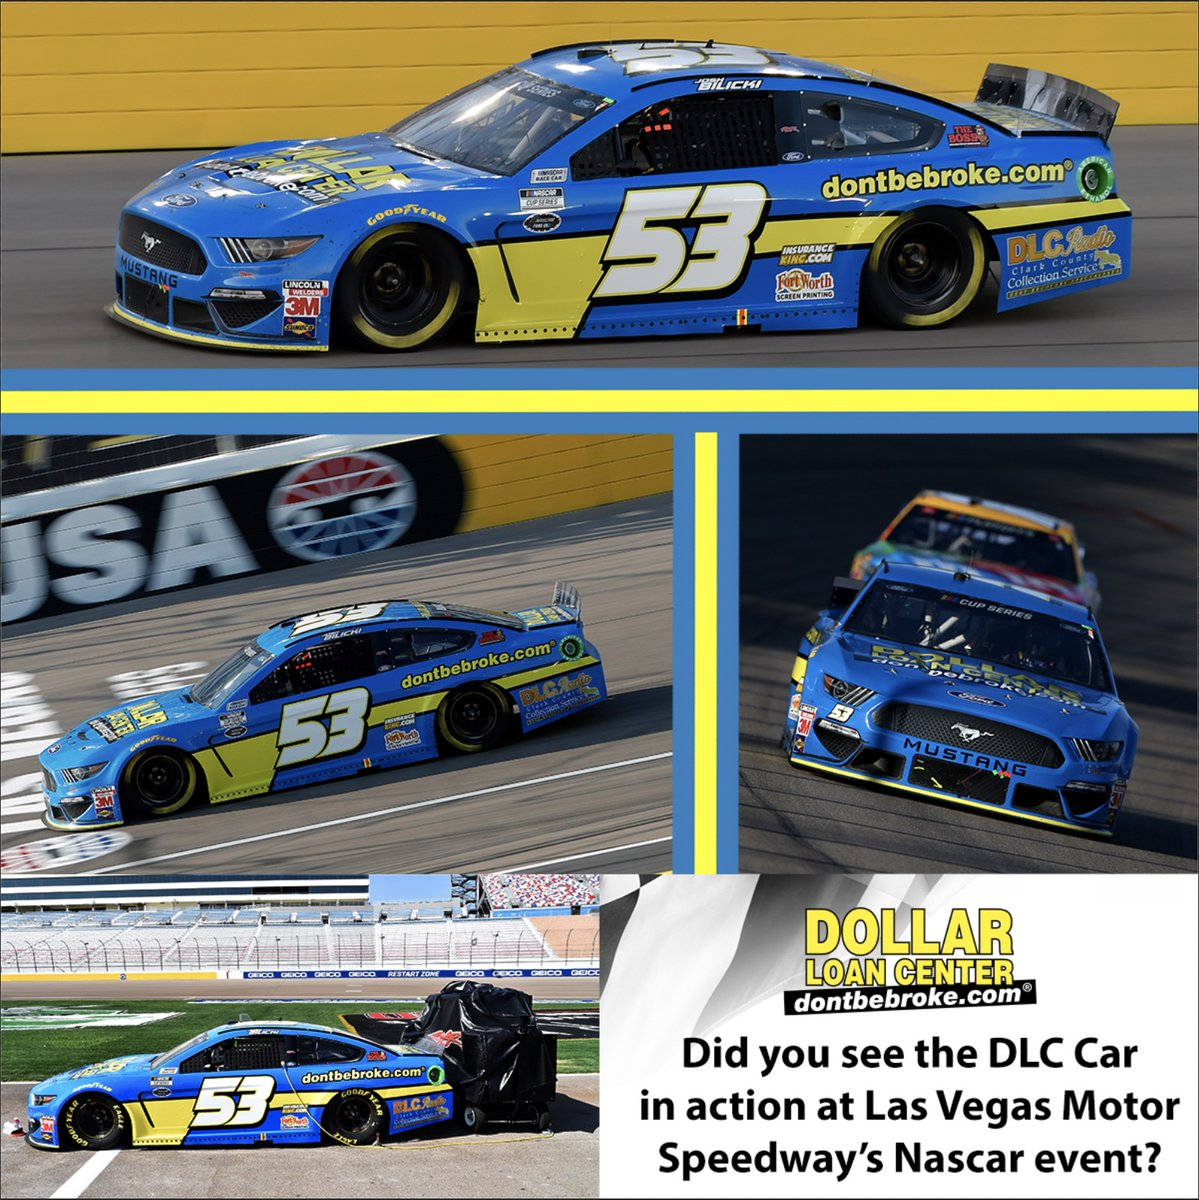 Did you see the DLC Car in action at Las Vegas Motor Speedway's Nascar Event? https://t.co/7YzgJBG5d3